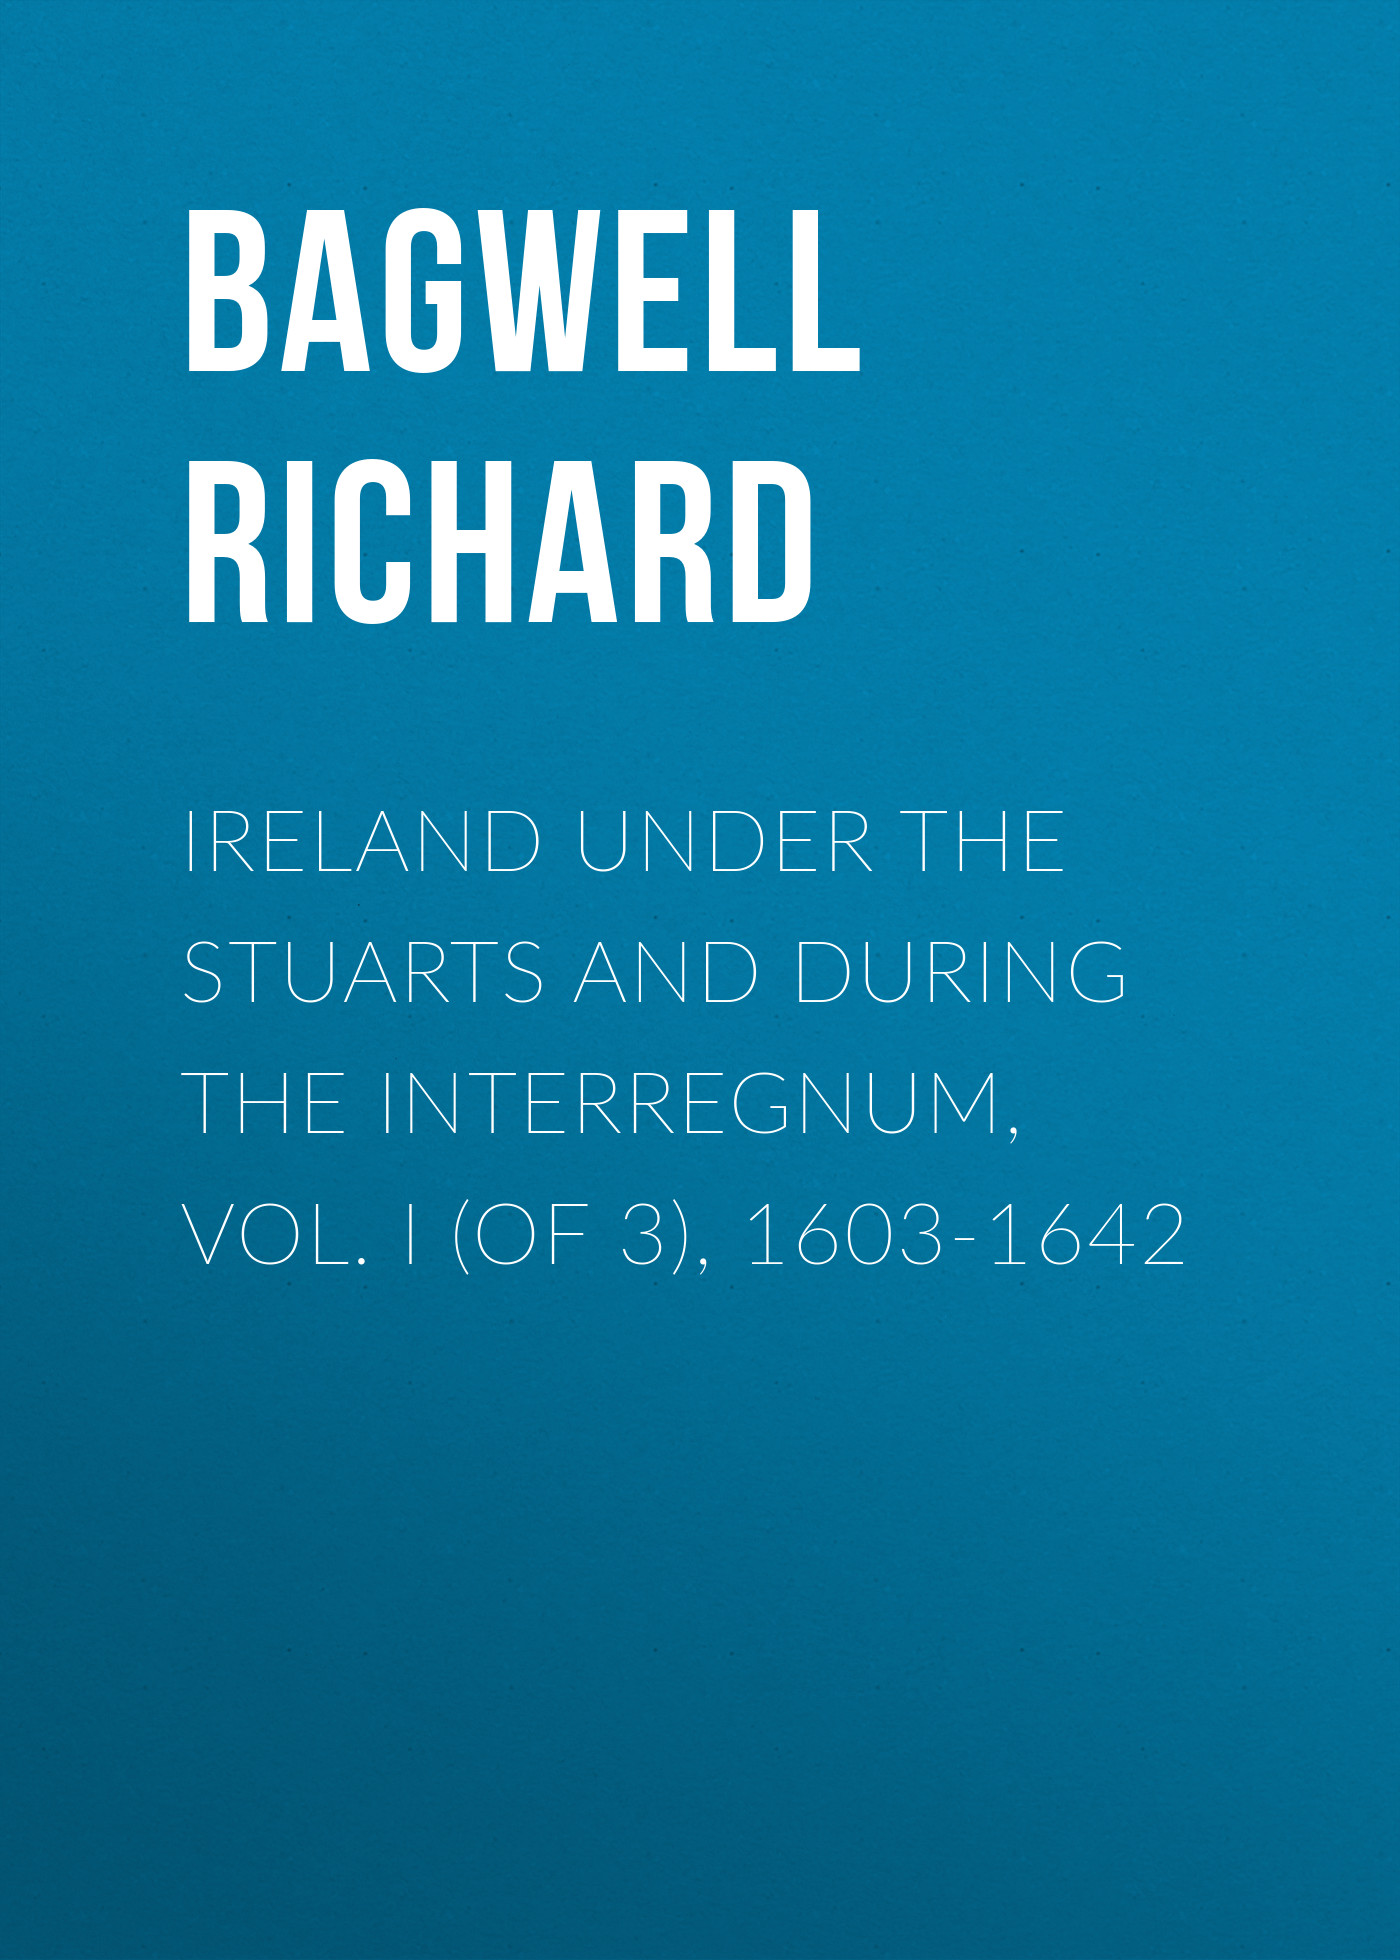 Bagwell Richard Ireland under the Stuarts and during the Interregnum, Vol. I (of 3), 1603-1642 abbott jacob richard i